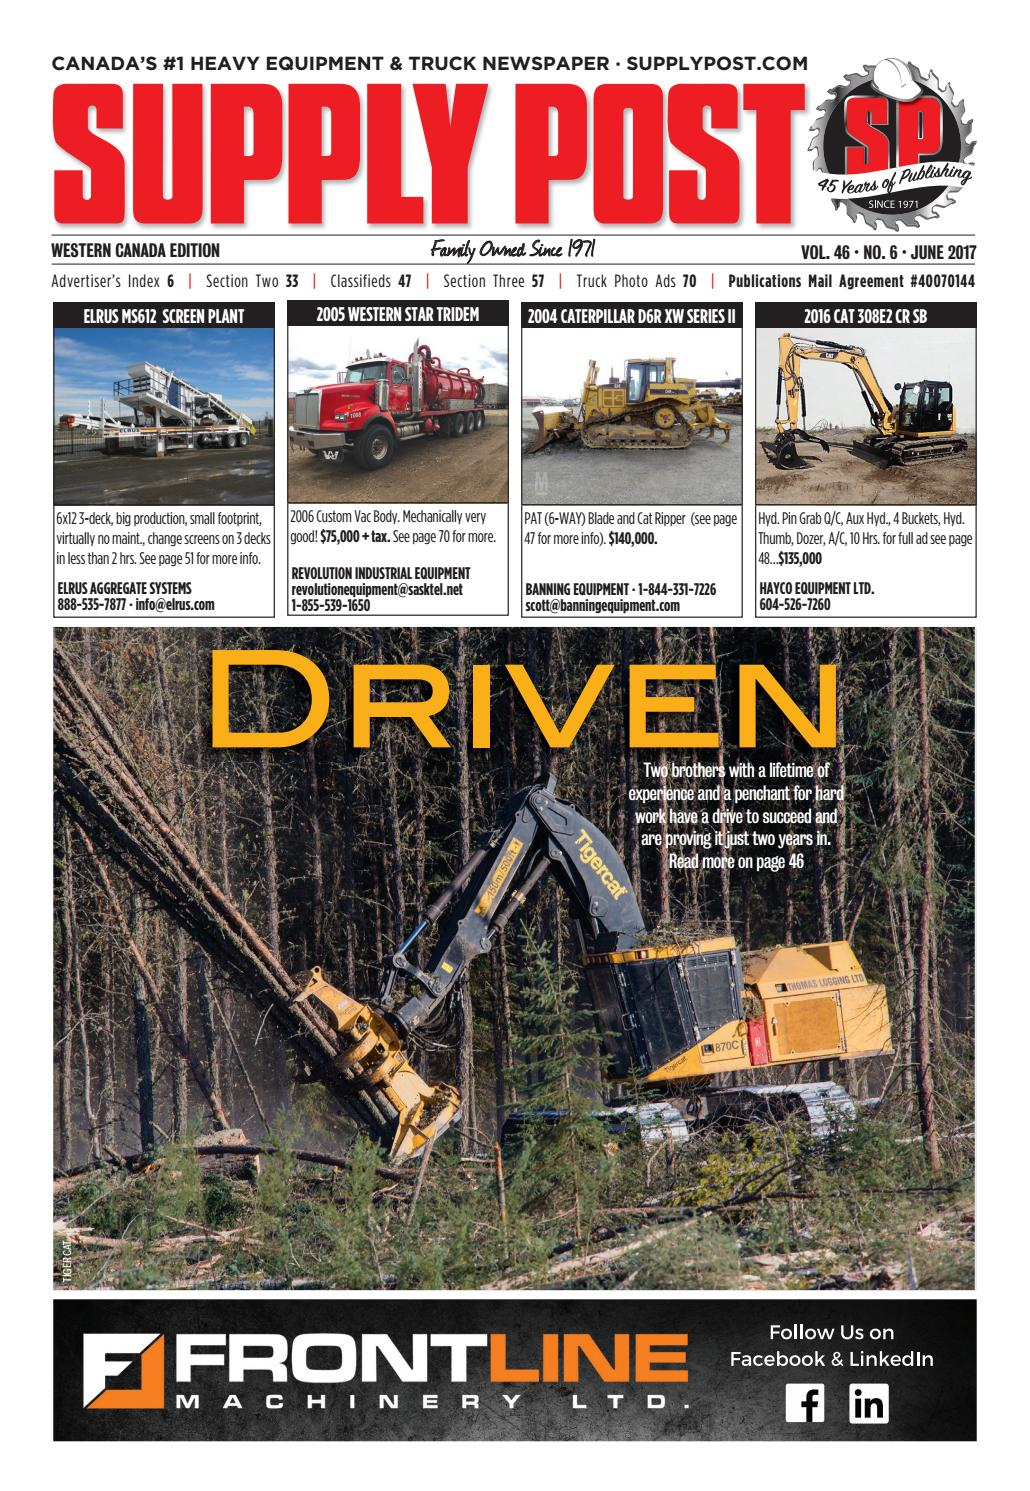 6d38c2bf4e Supply Post West June 2017 by Supply Post Newspaper - issuu